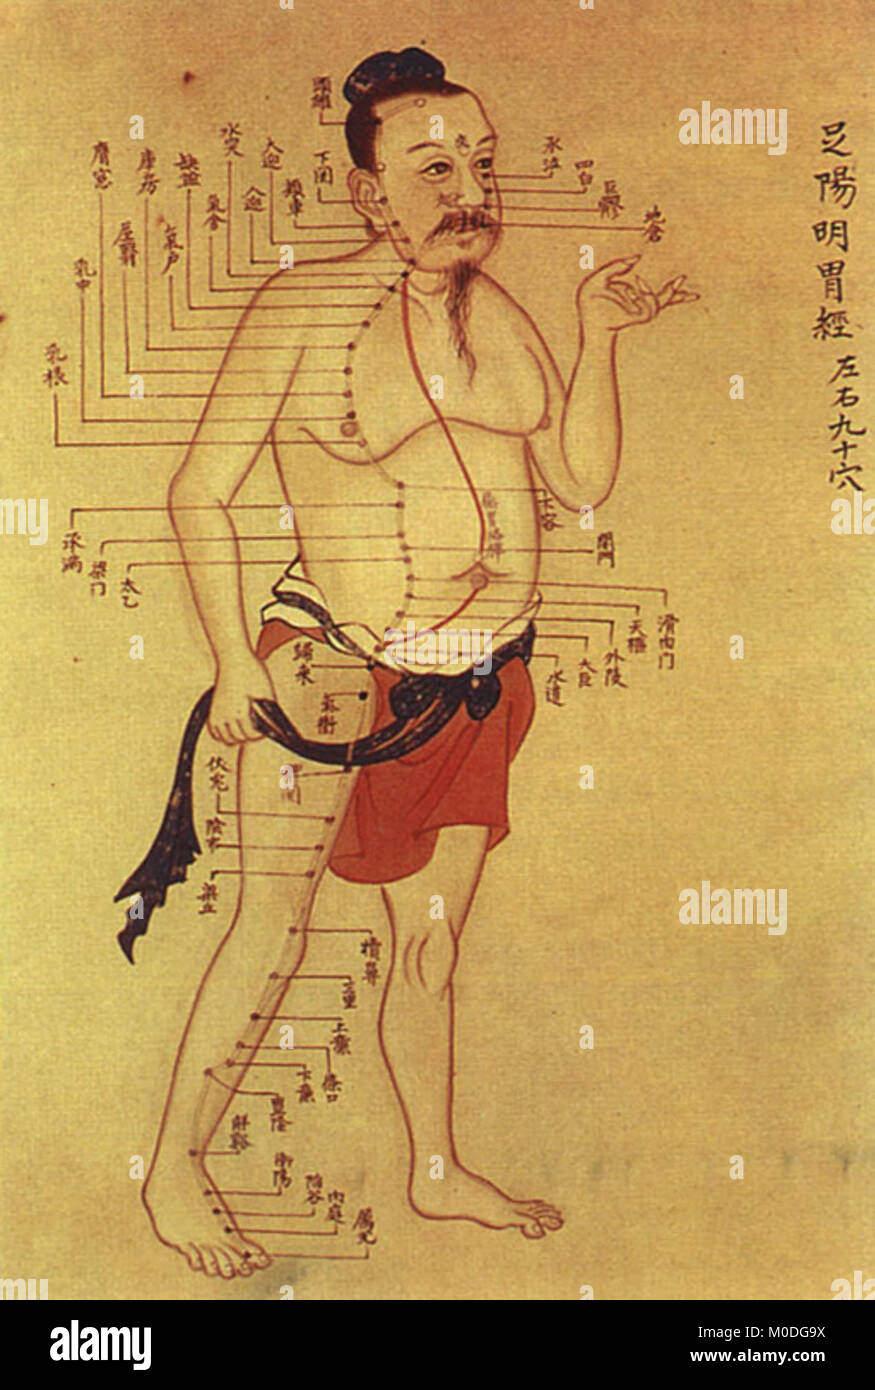 Old Chinese Medical Chart On Acupuncture Meridians Stock Photo